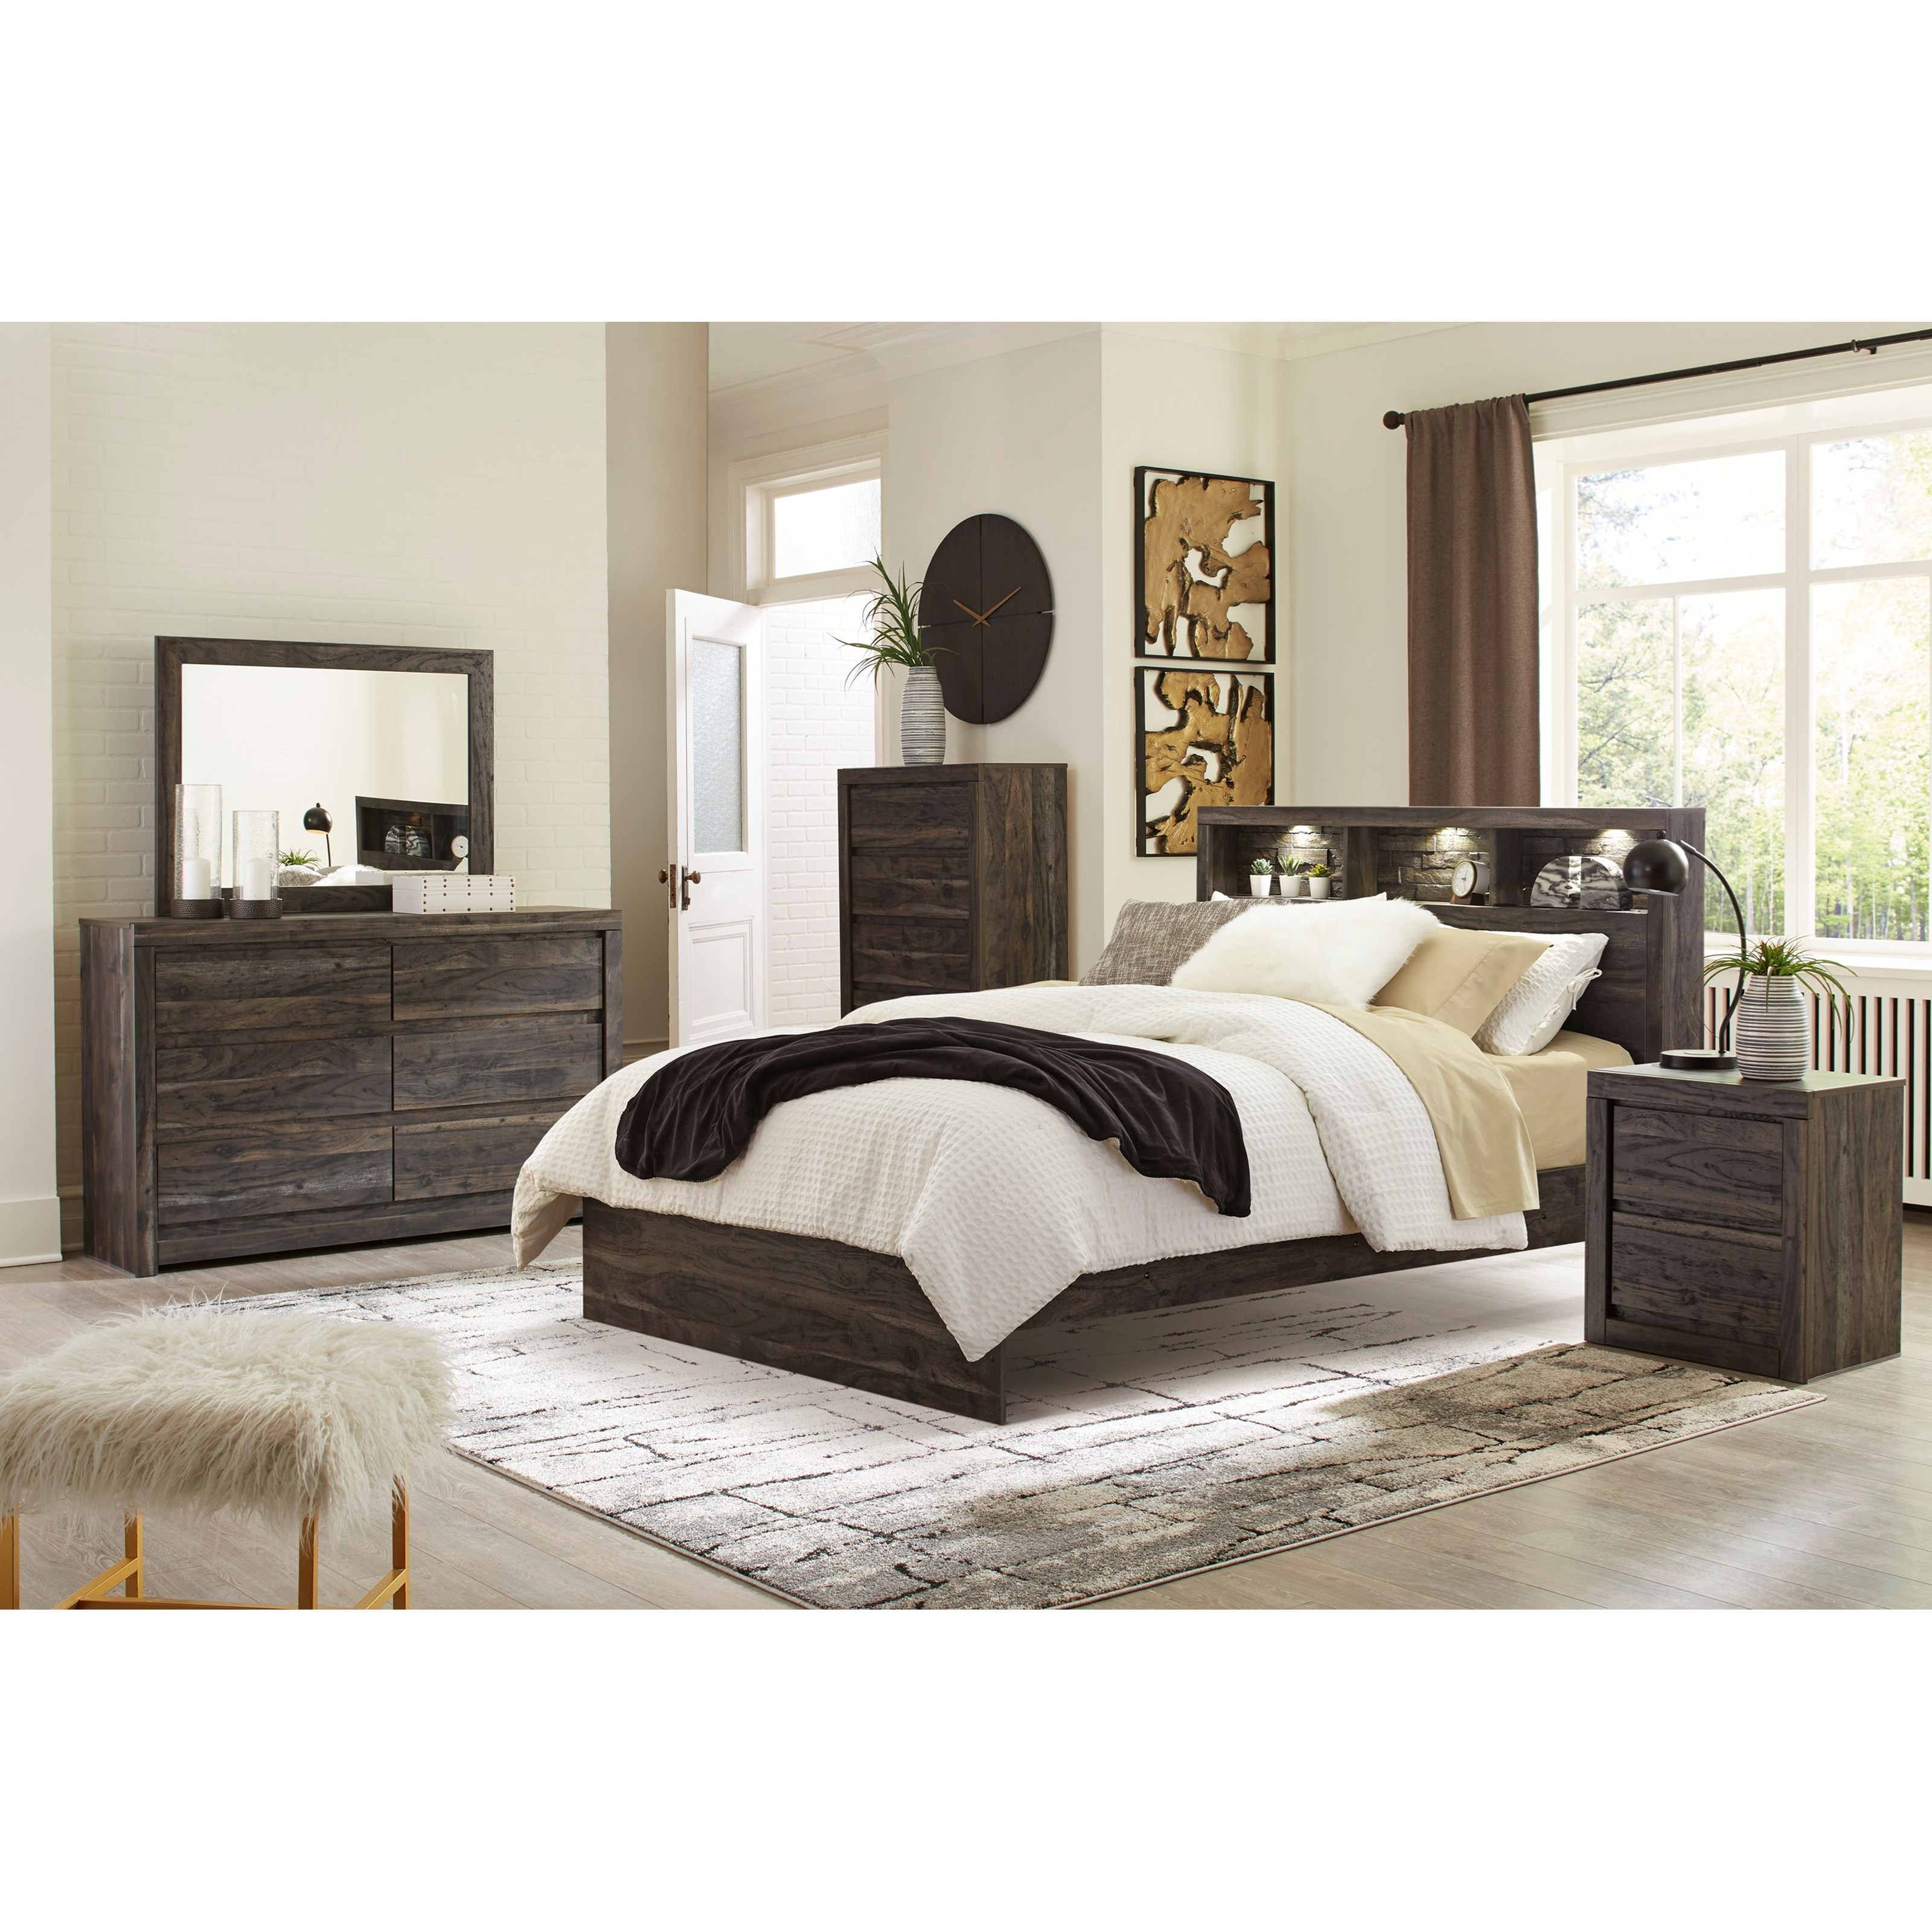 Vay Bay Queen Bedroom Group by Benchcraft at Value City Furniture